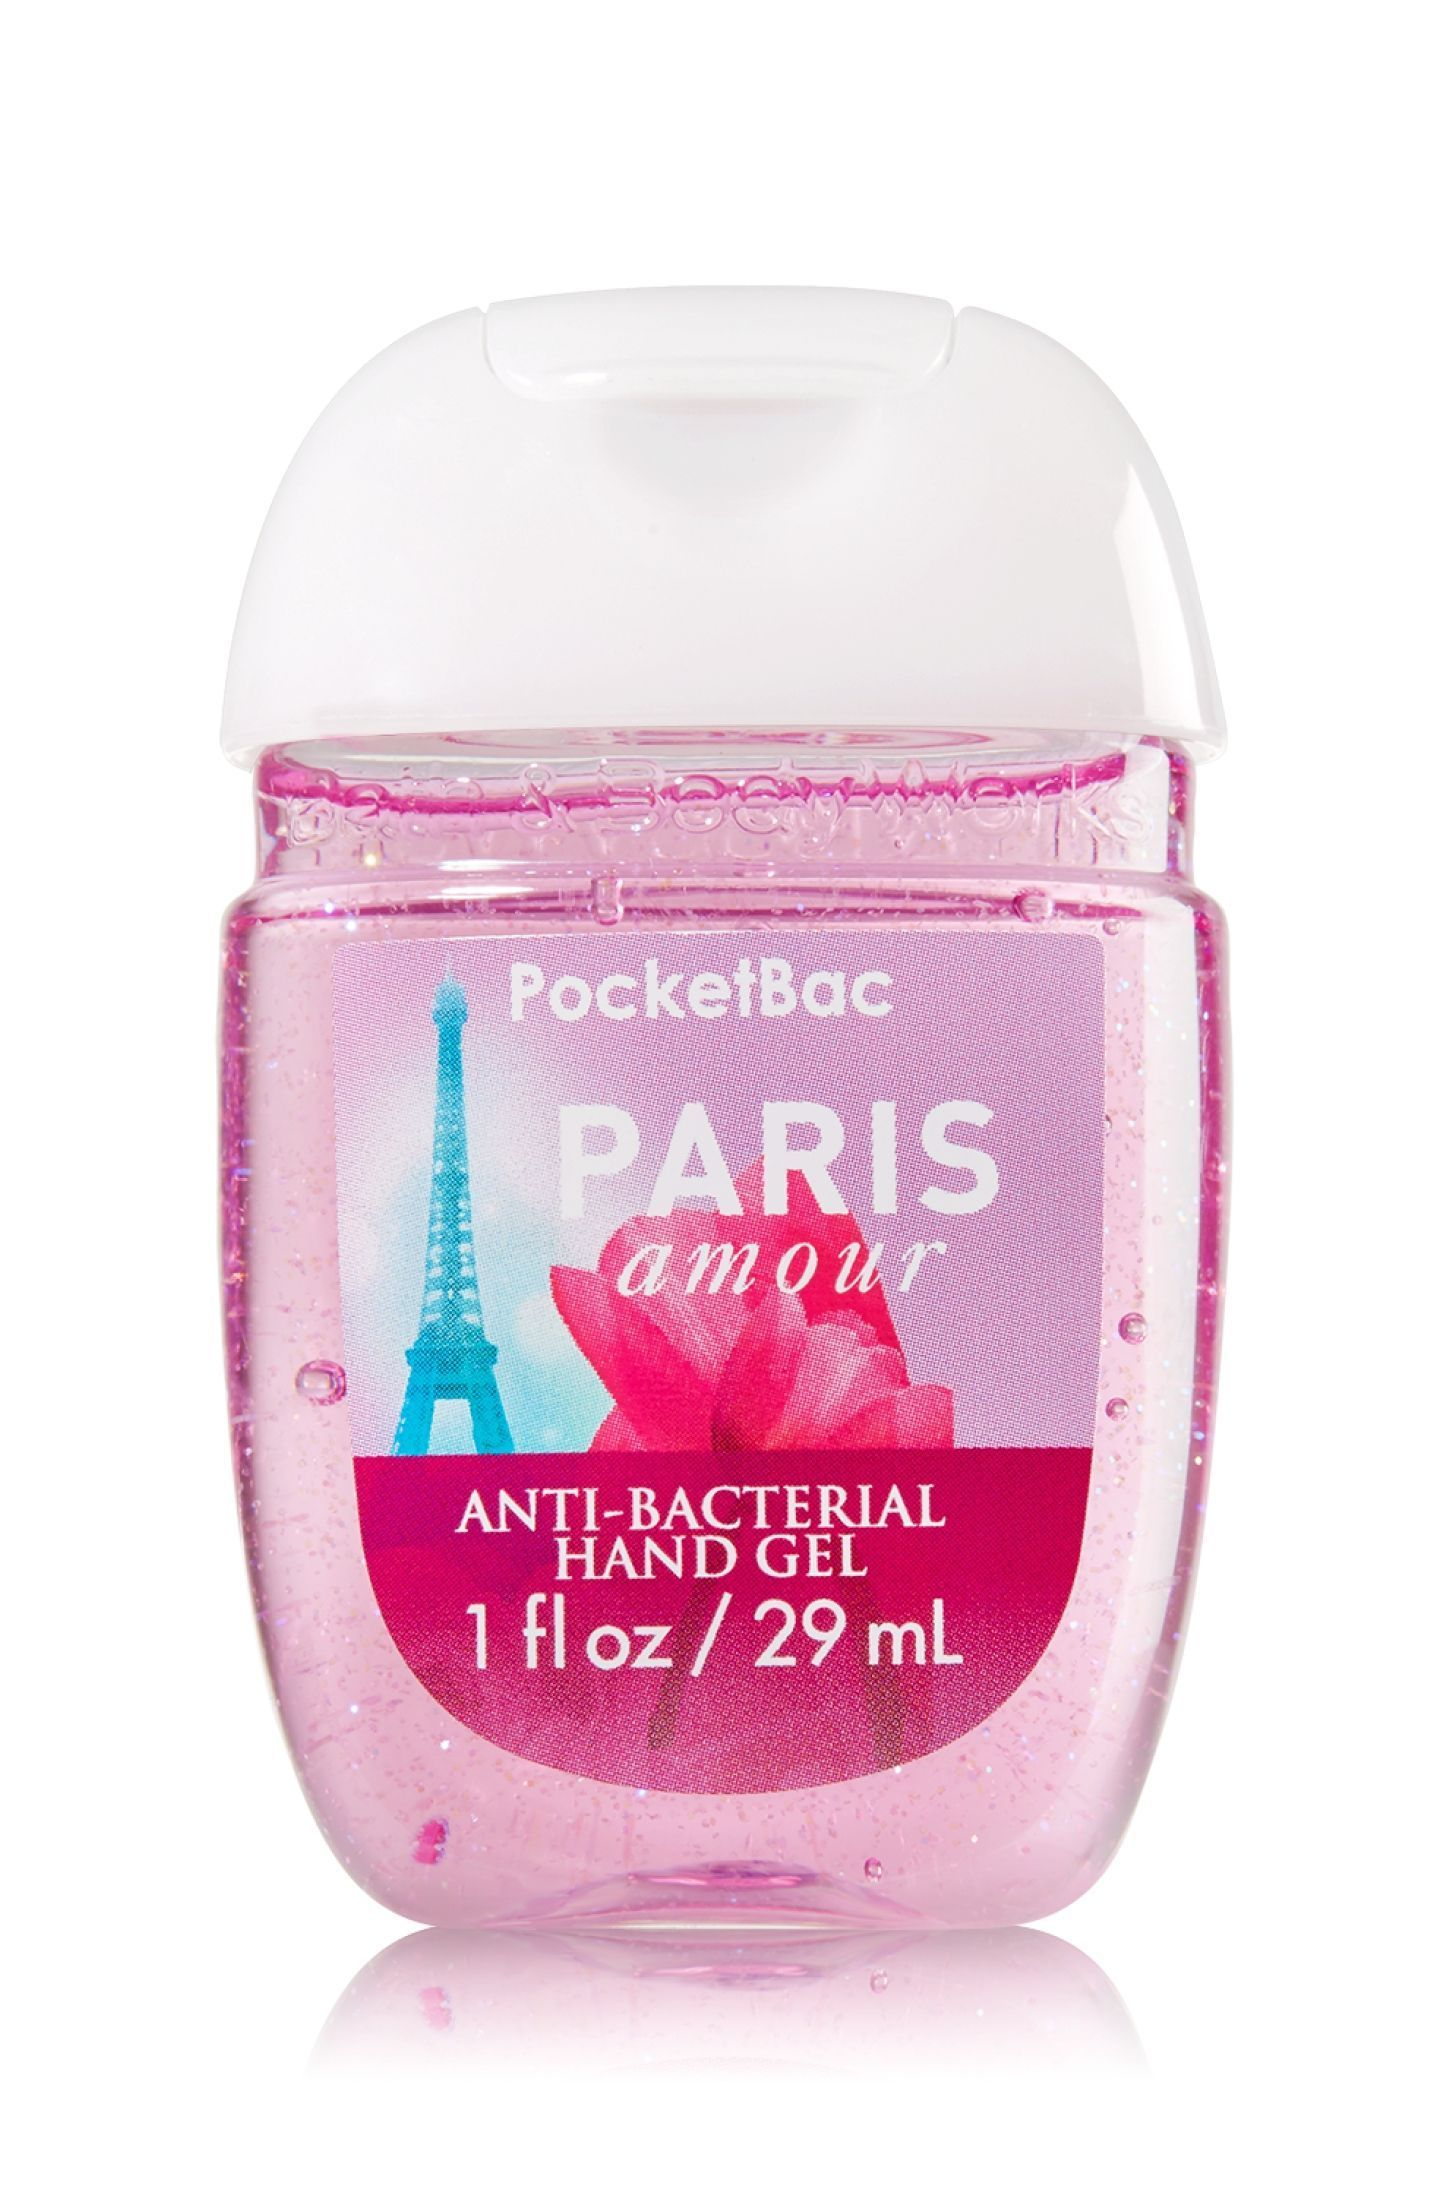 Soapsanitizer Sanitizing Pocketbac Paris Amour Works Hand